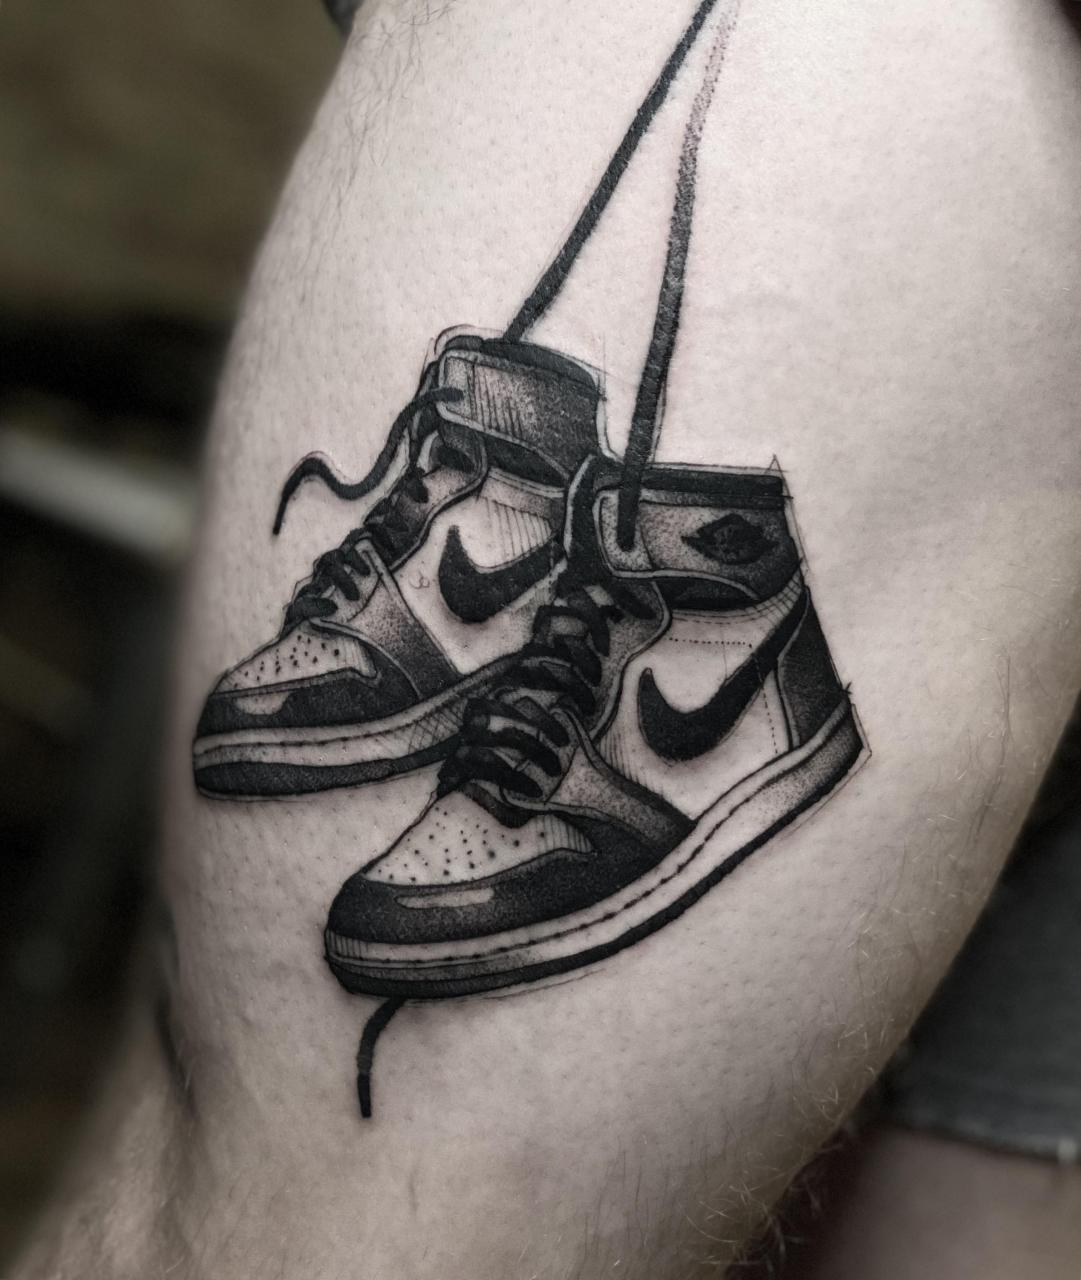 85 Air Jordan 1 piece by me (Max LaCroix) from Empire Inks Studio in Appleton, WI